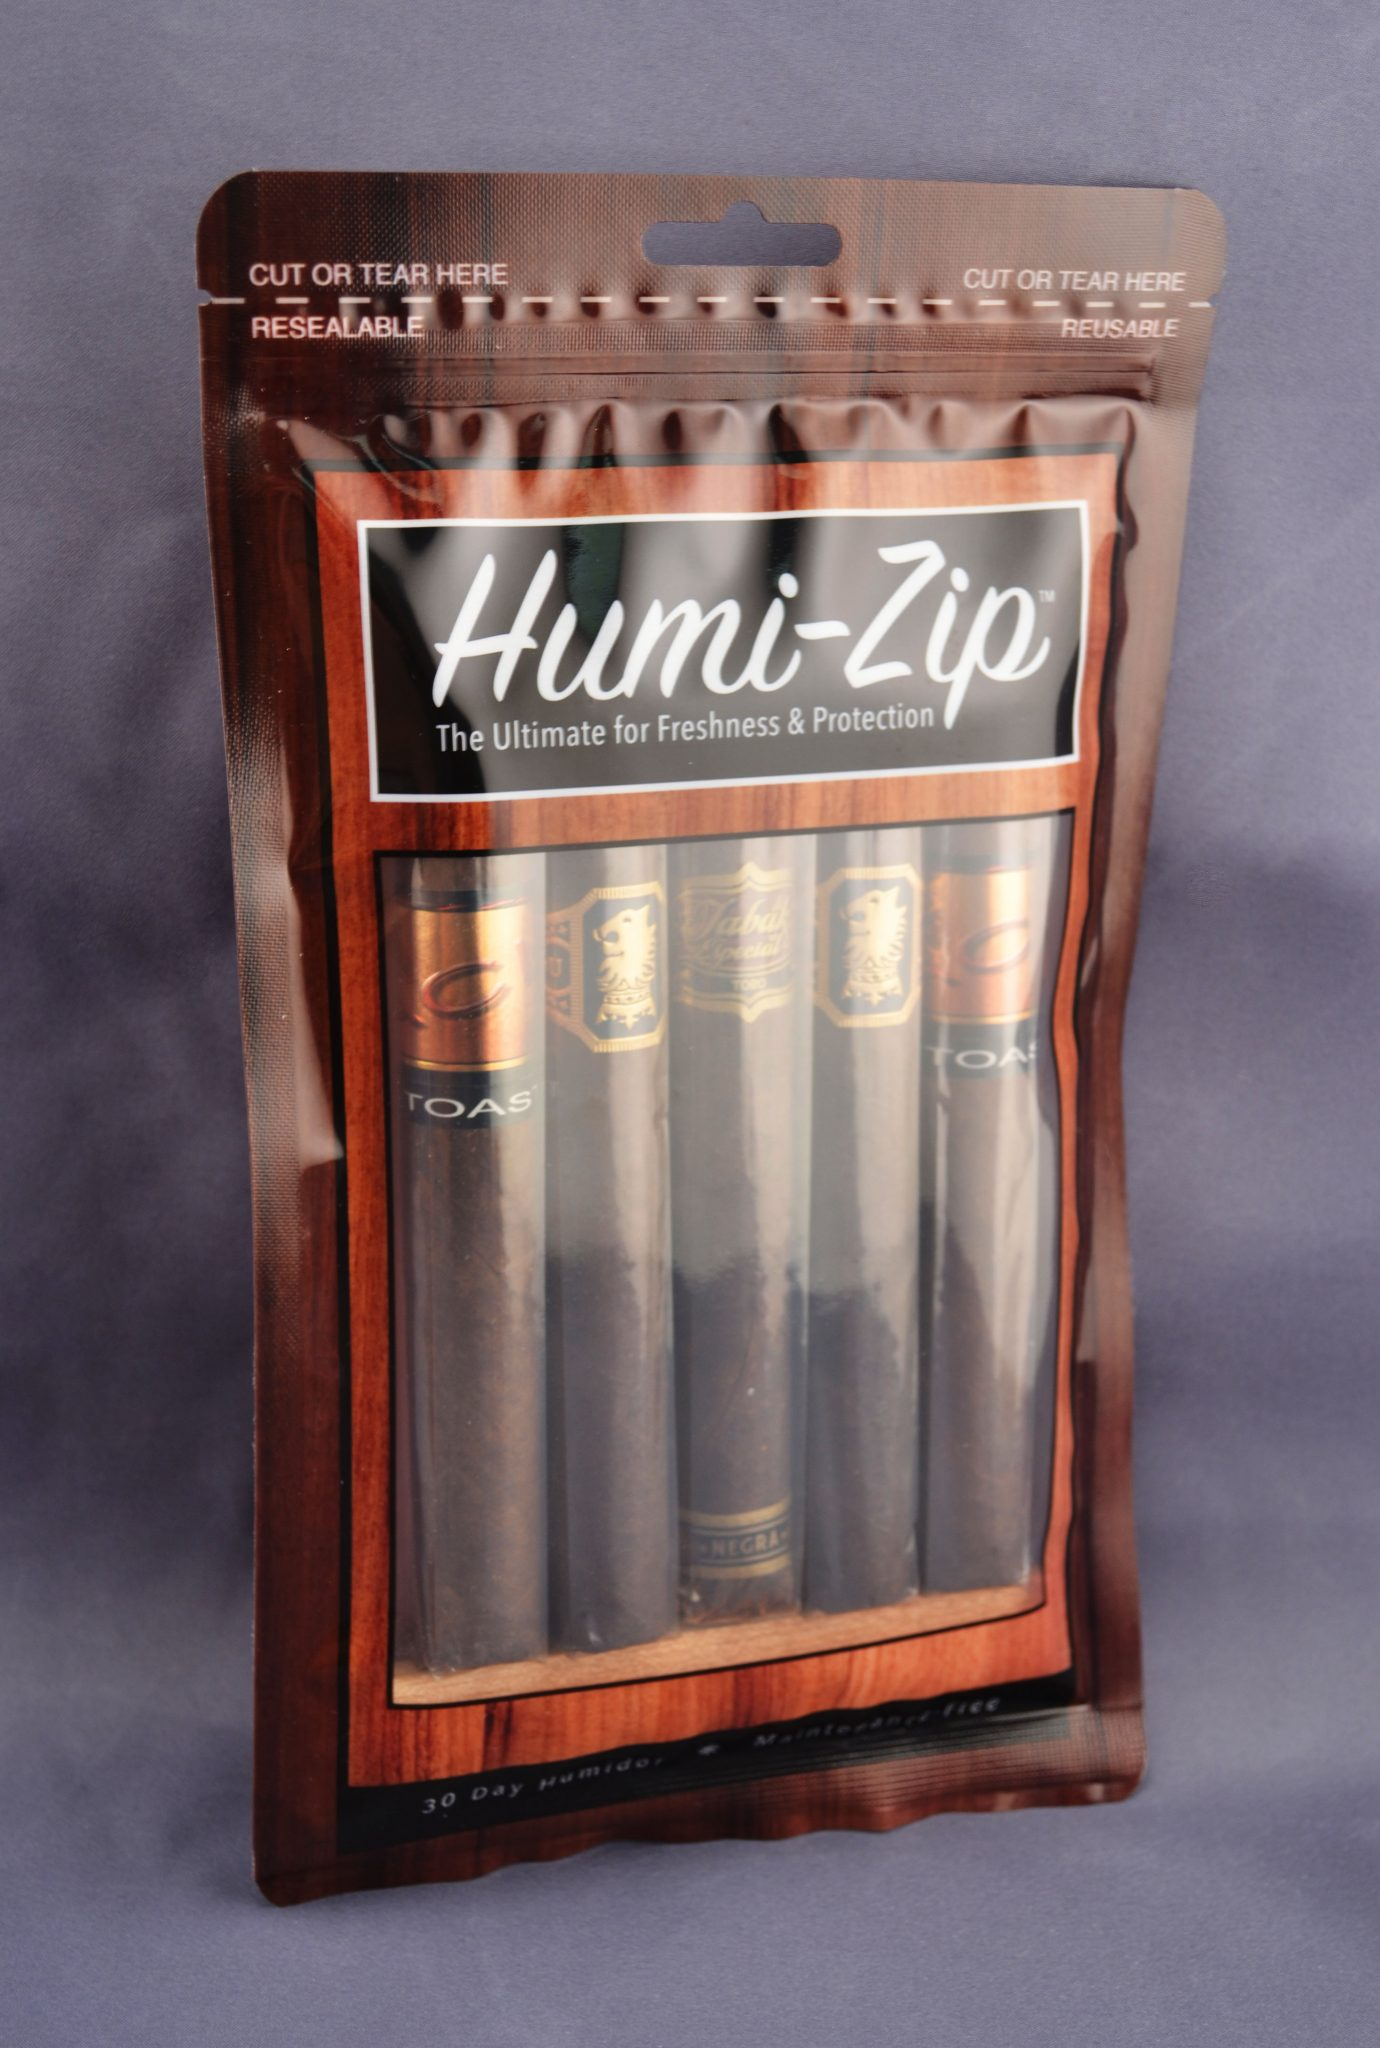 Humi-Zip Reclosable Humidification Cigar Bag 4 MIL – Pack of 100